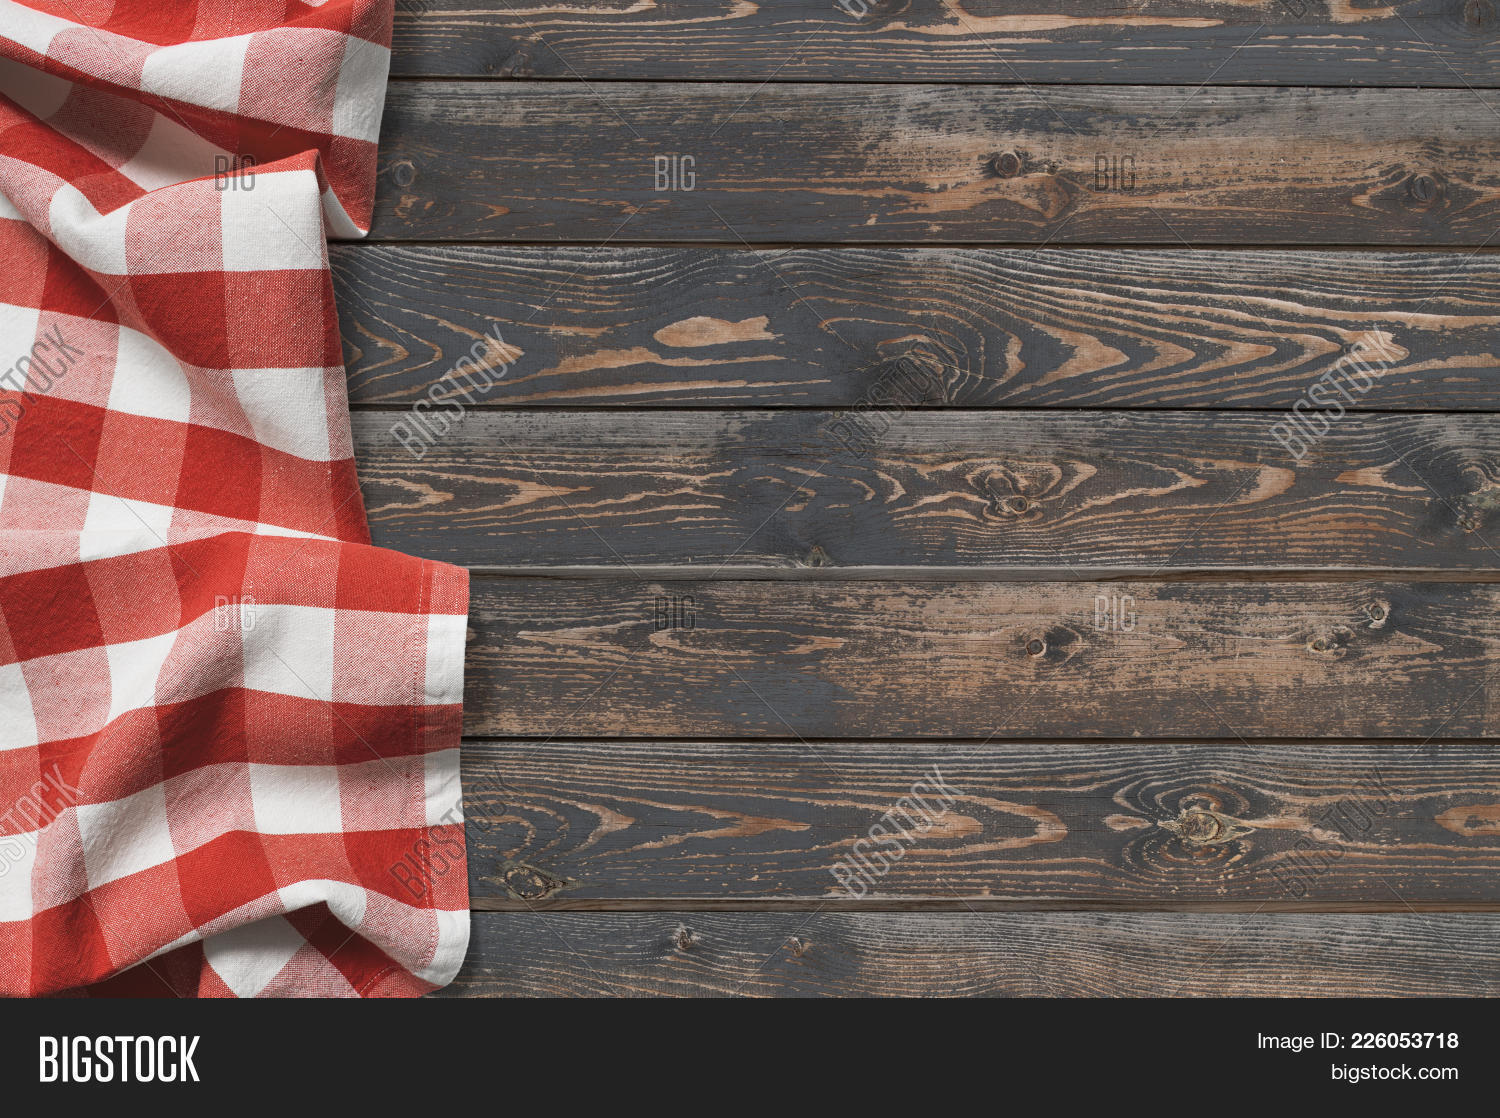 Wooden Table Top View Image & Photo (Free Trial) | Bigstock